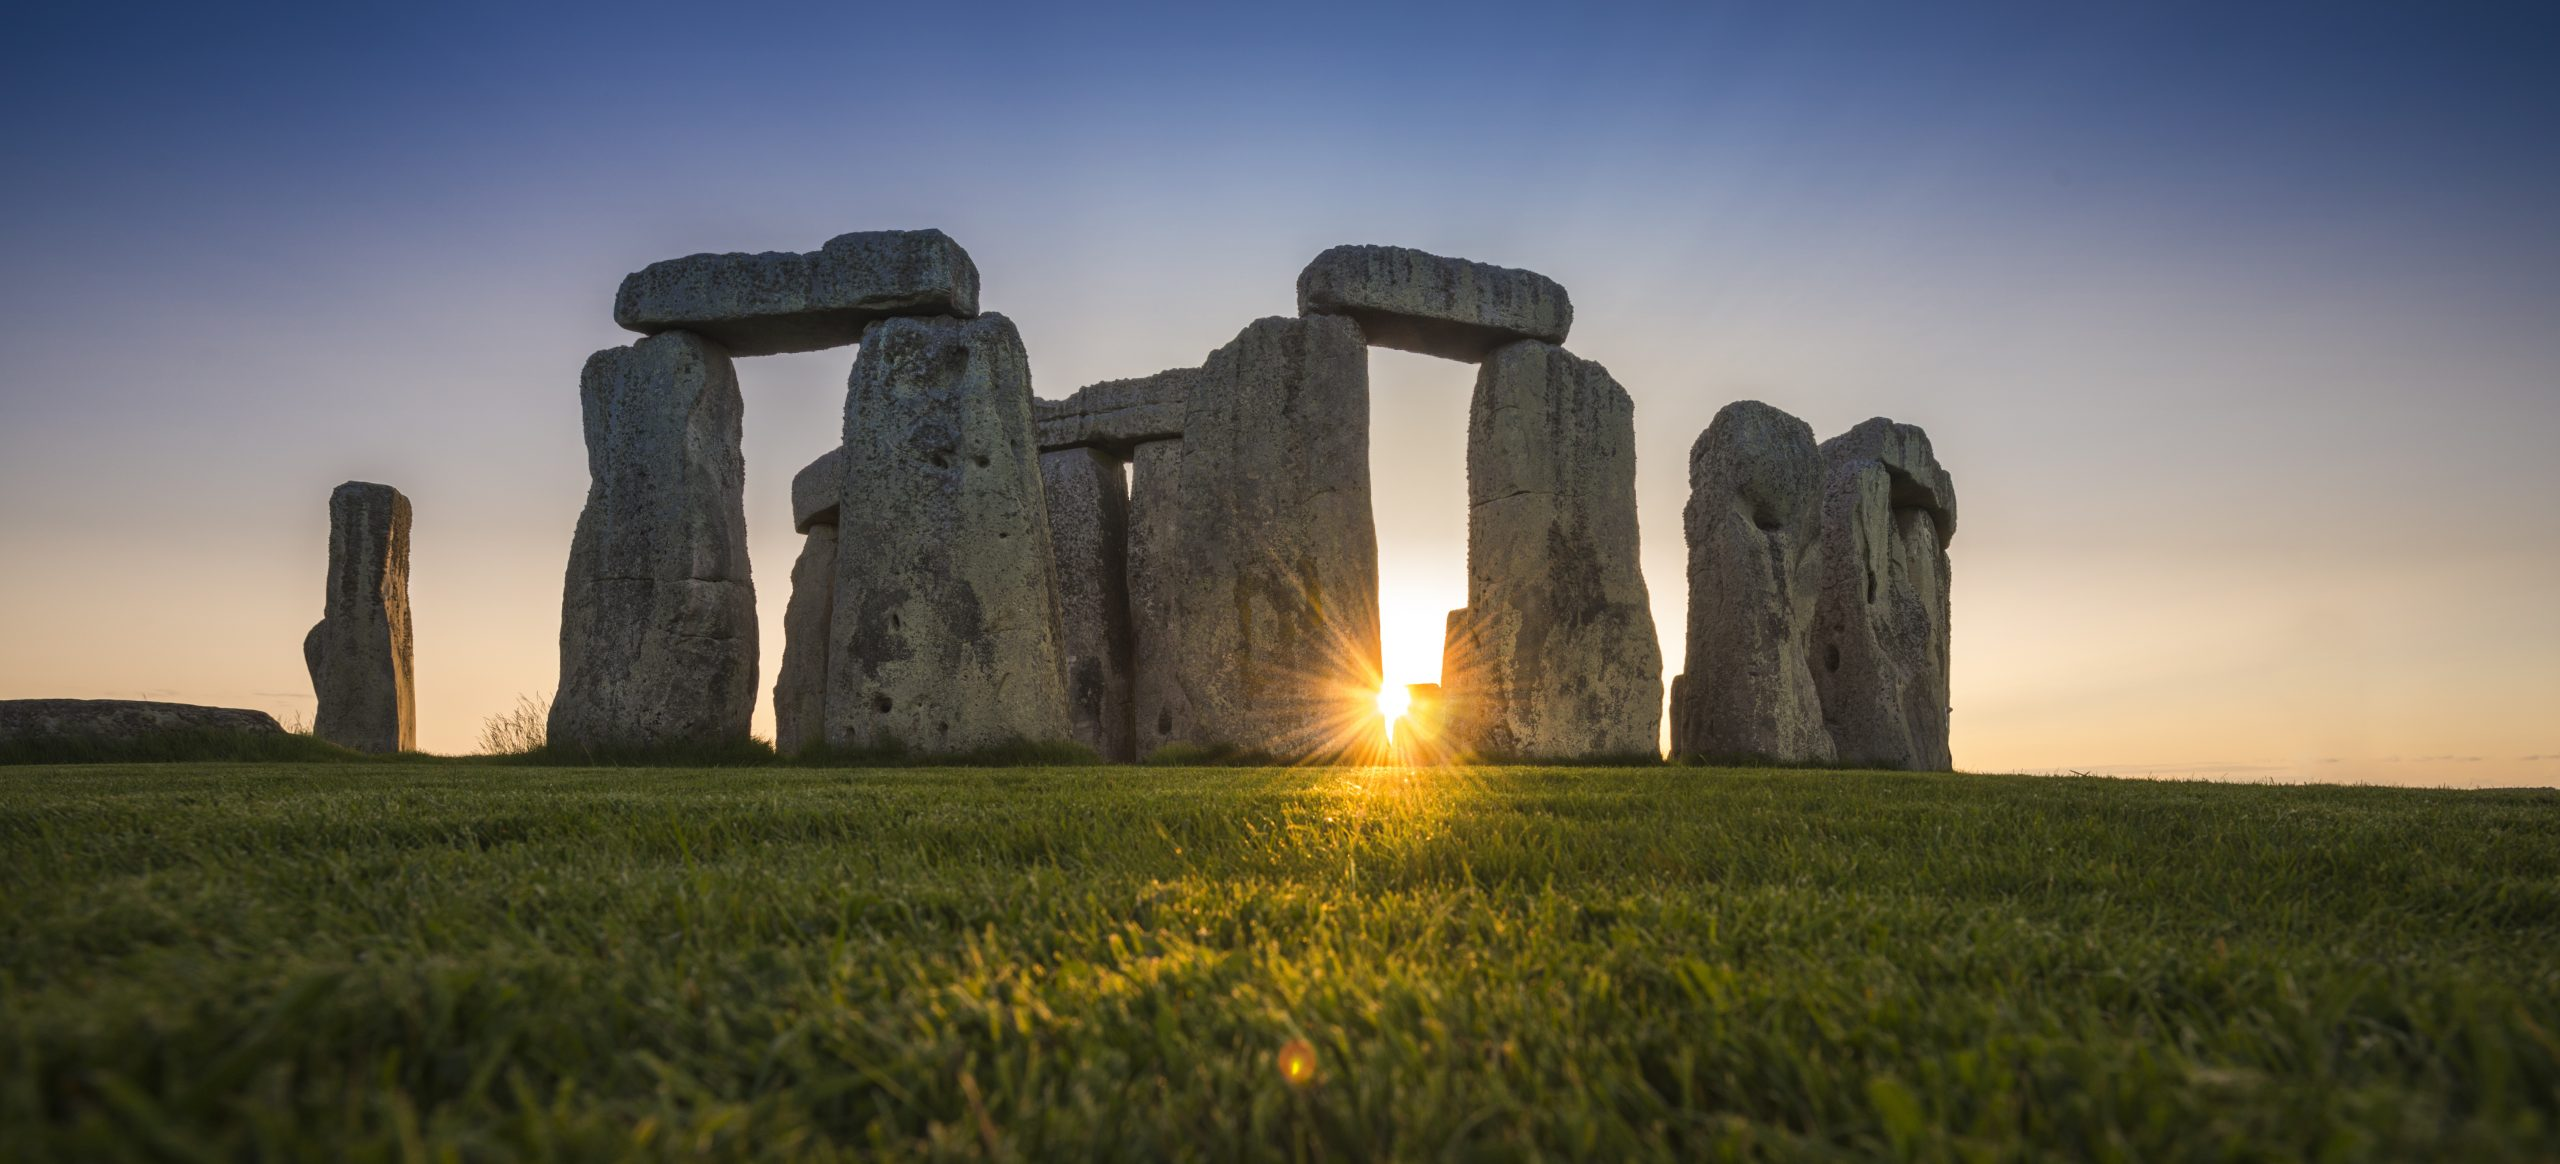 Art Industry News: Stonehenge Could Lose Its World Heritage Status Due to 'Combative and Dismissive' Politicians + Other Stories